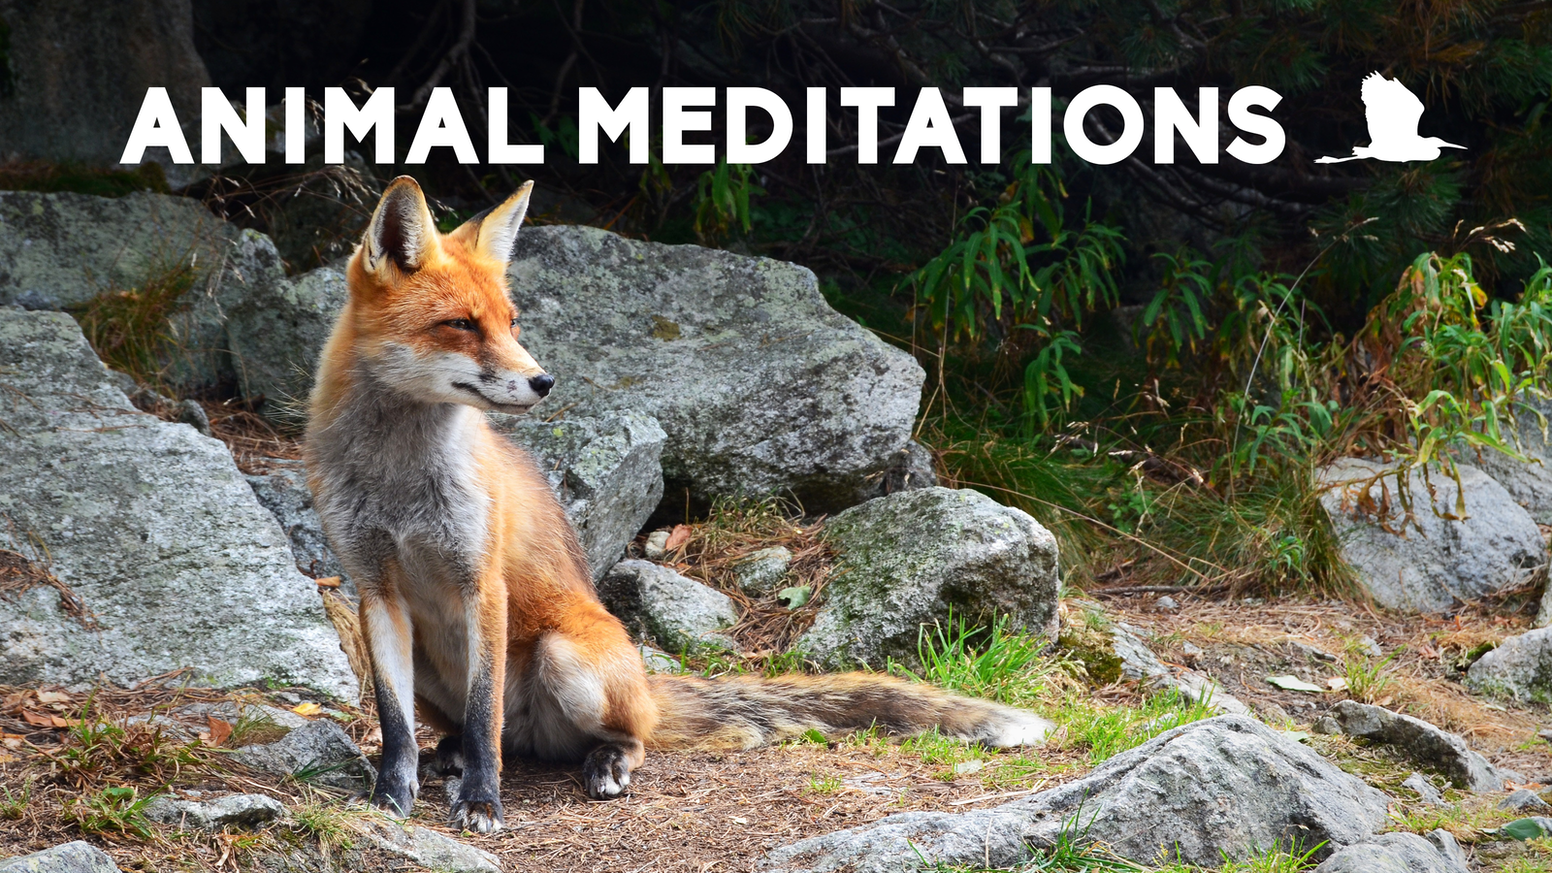 A collection of guided meditations inside the body and habitat of various animals.